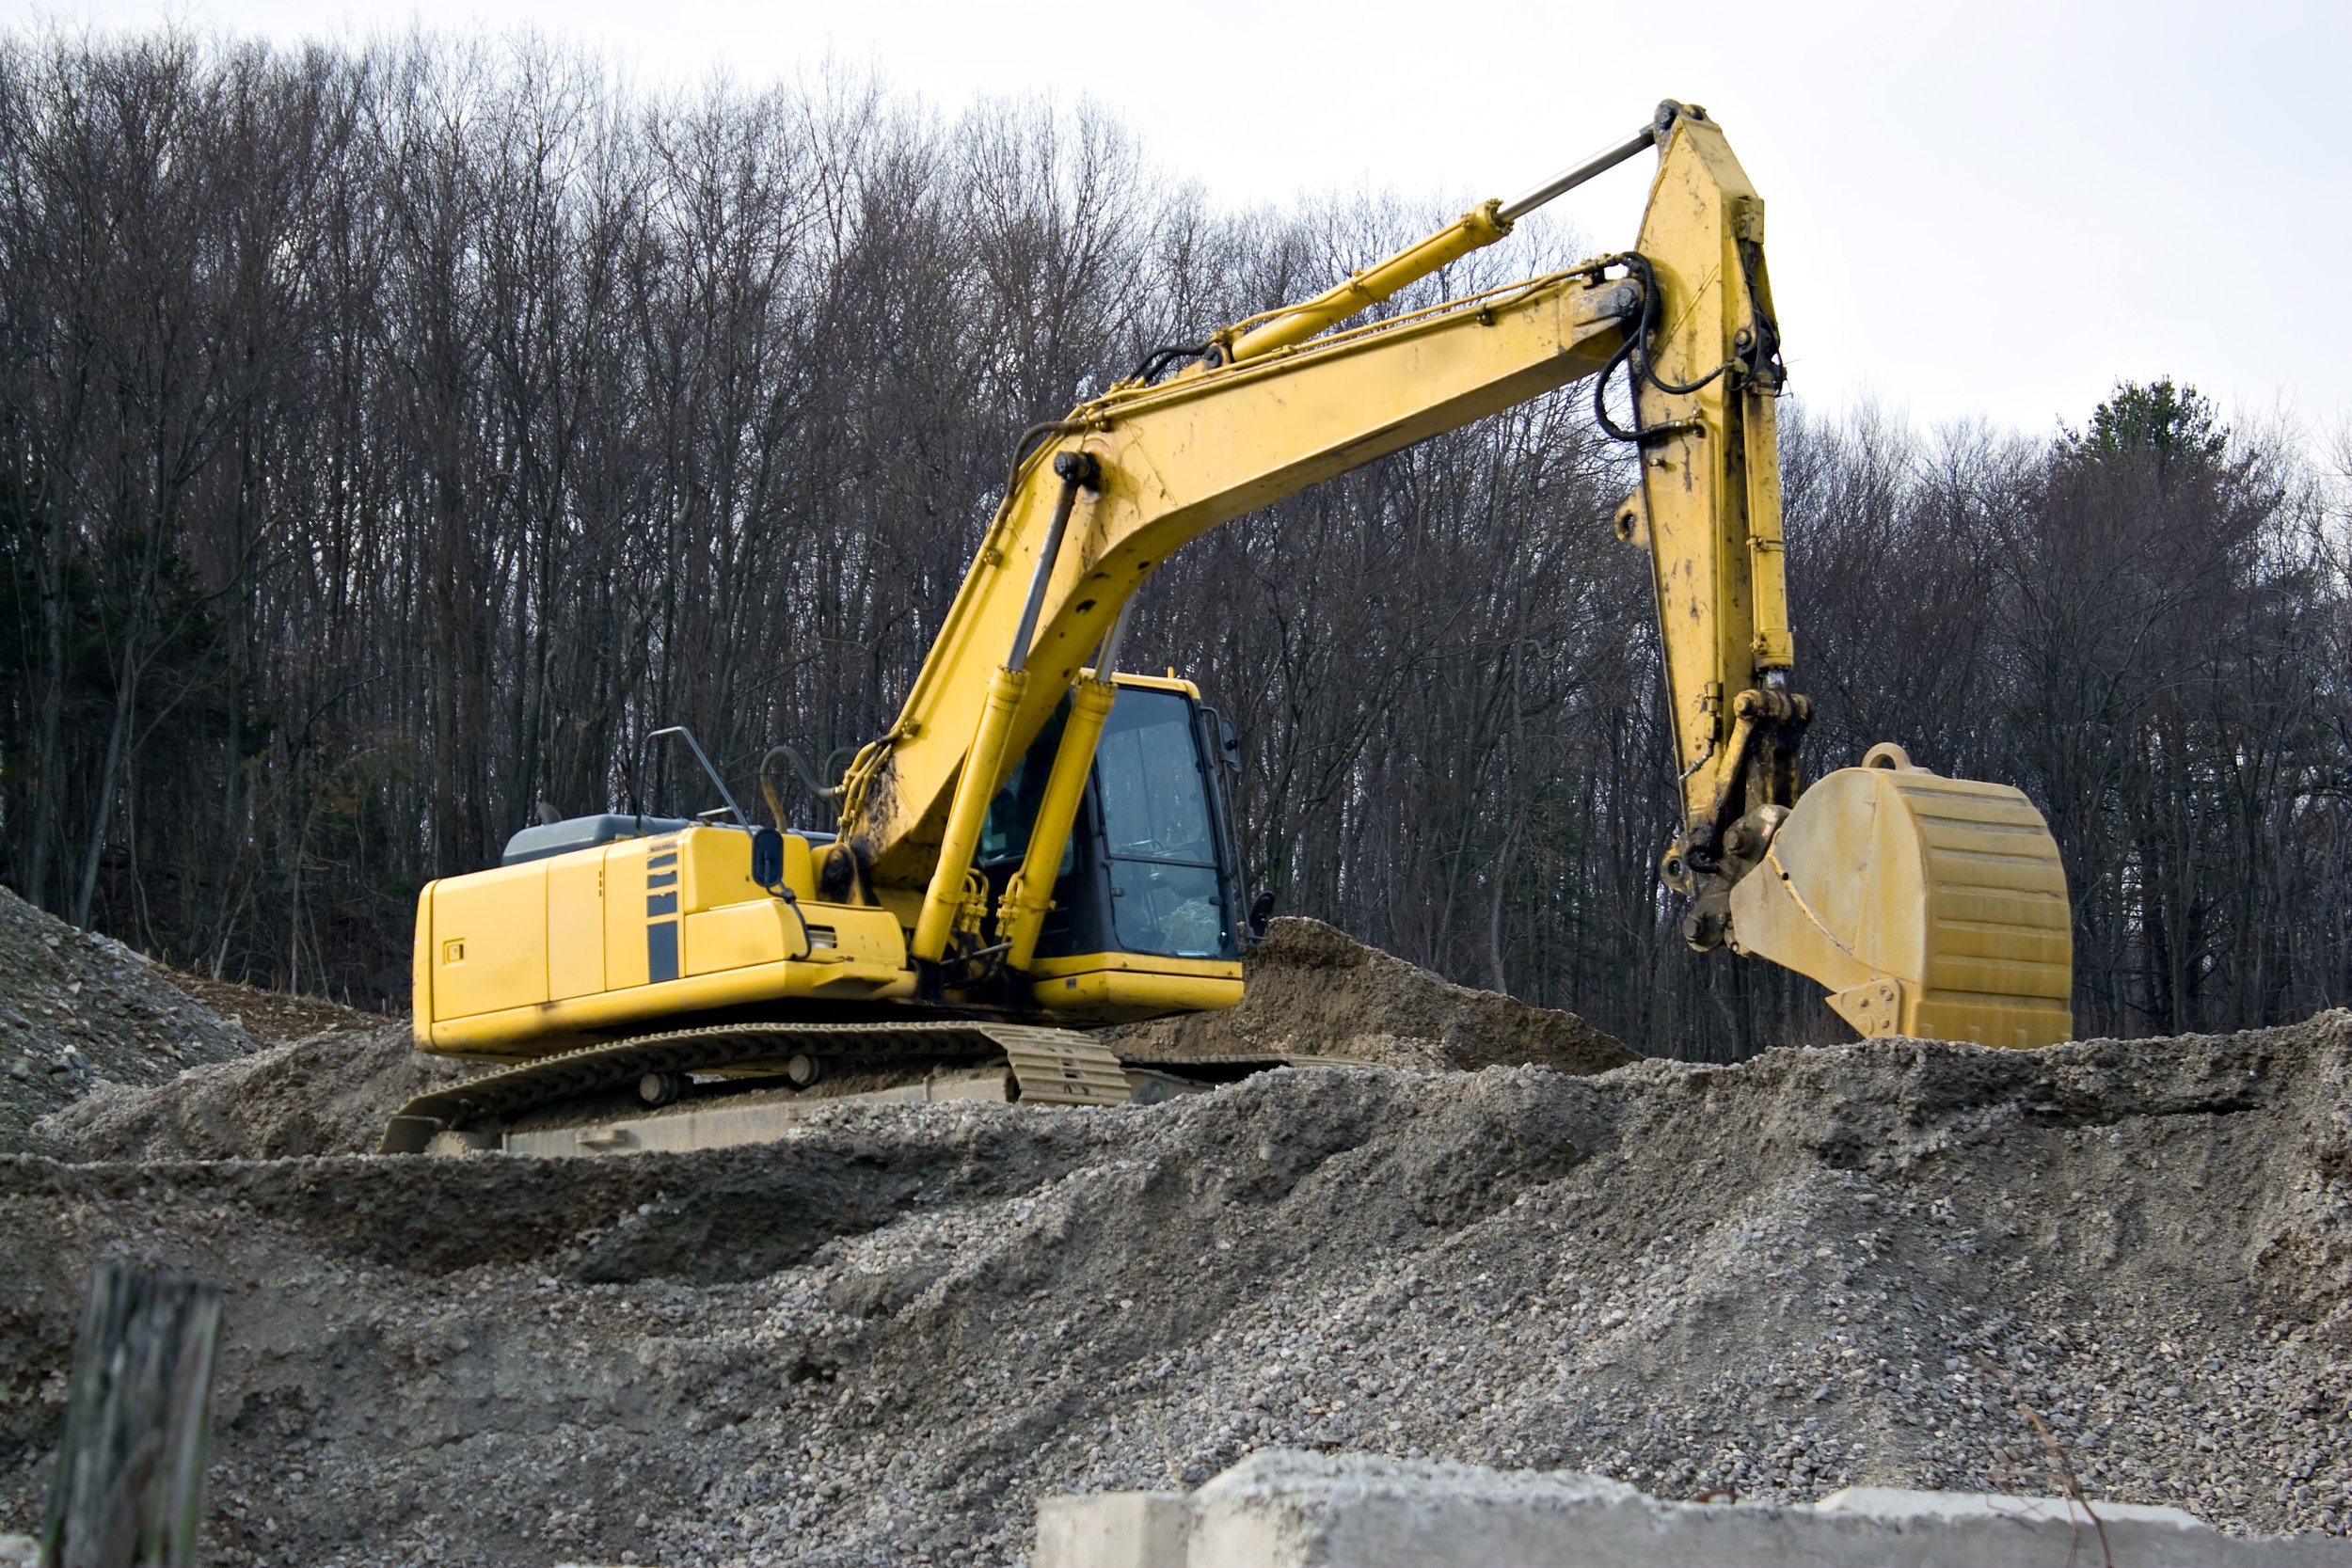 view-of-a-construction-site-with-heavy-duty-equipment_StNl7EuArj.jpg